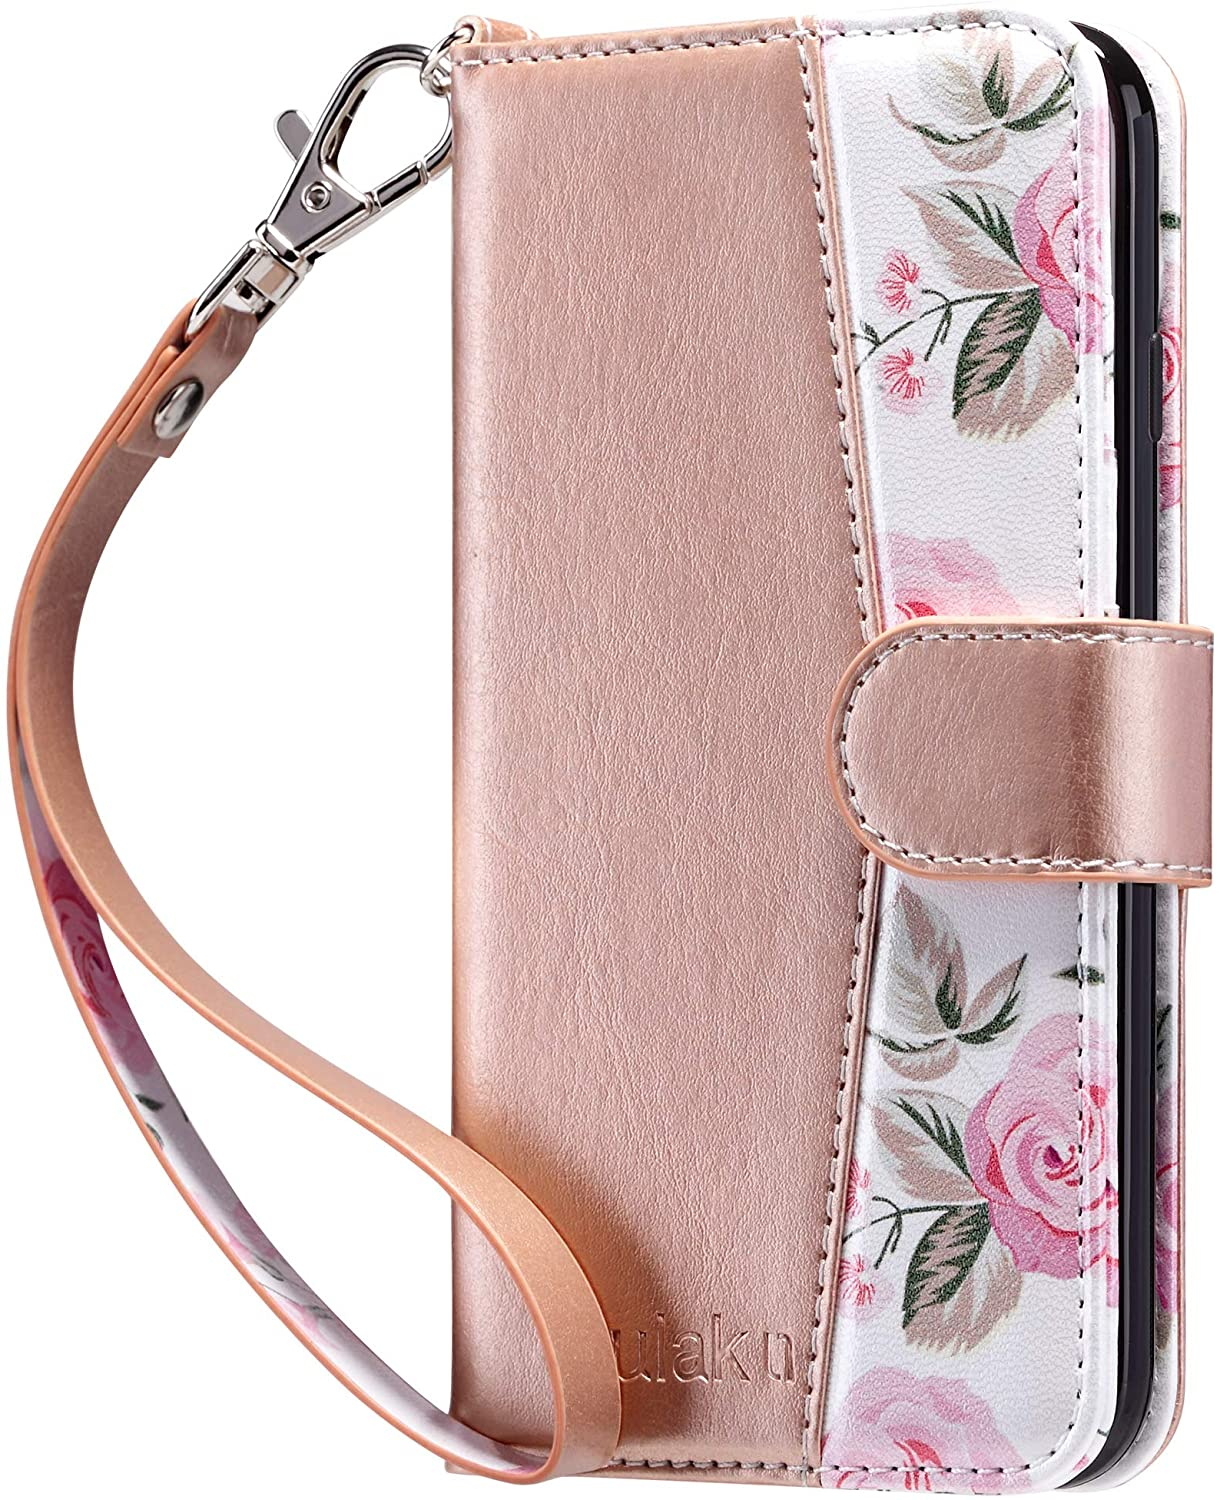 ULAK iPhone 8 Wallet, iPhone SE Wallet 2020, iPhone 7 Flip Wallet Case, PU Leather Wallet Kickstand Card Holder Shockproof Protective Cover for iPhone 7/8/Phone SE 2nd Generation 4.7 inch, Rose Gold